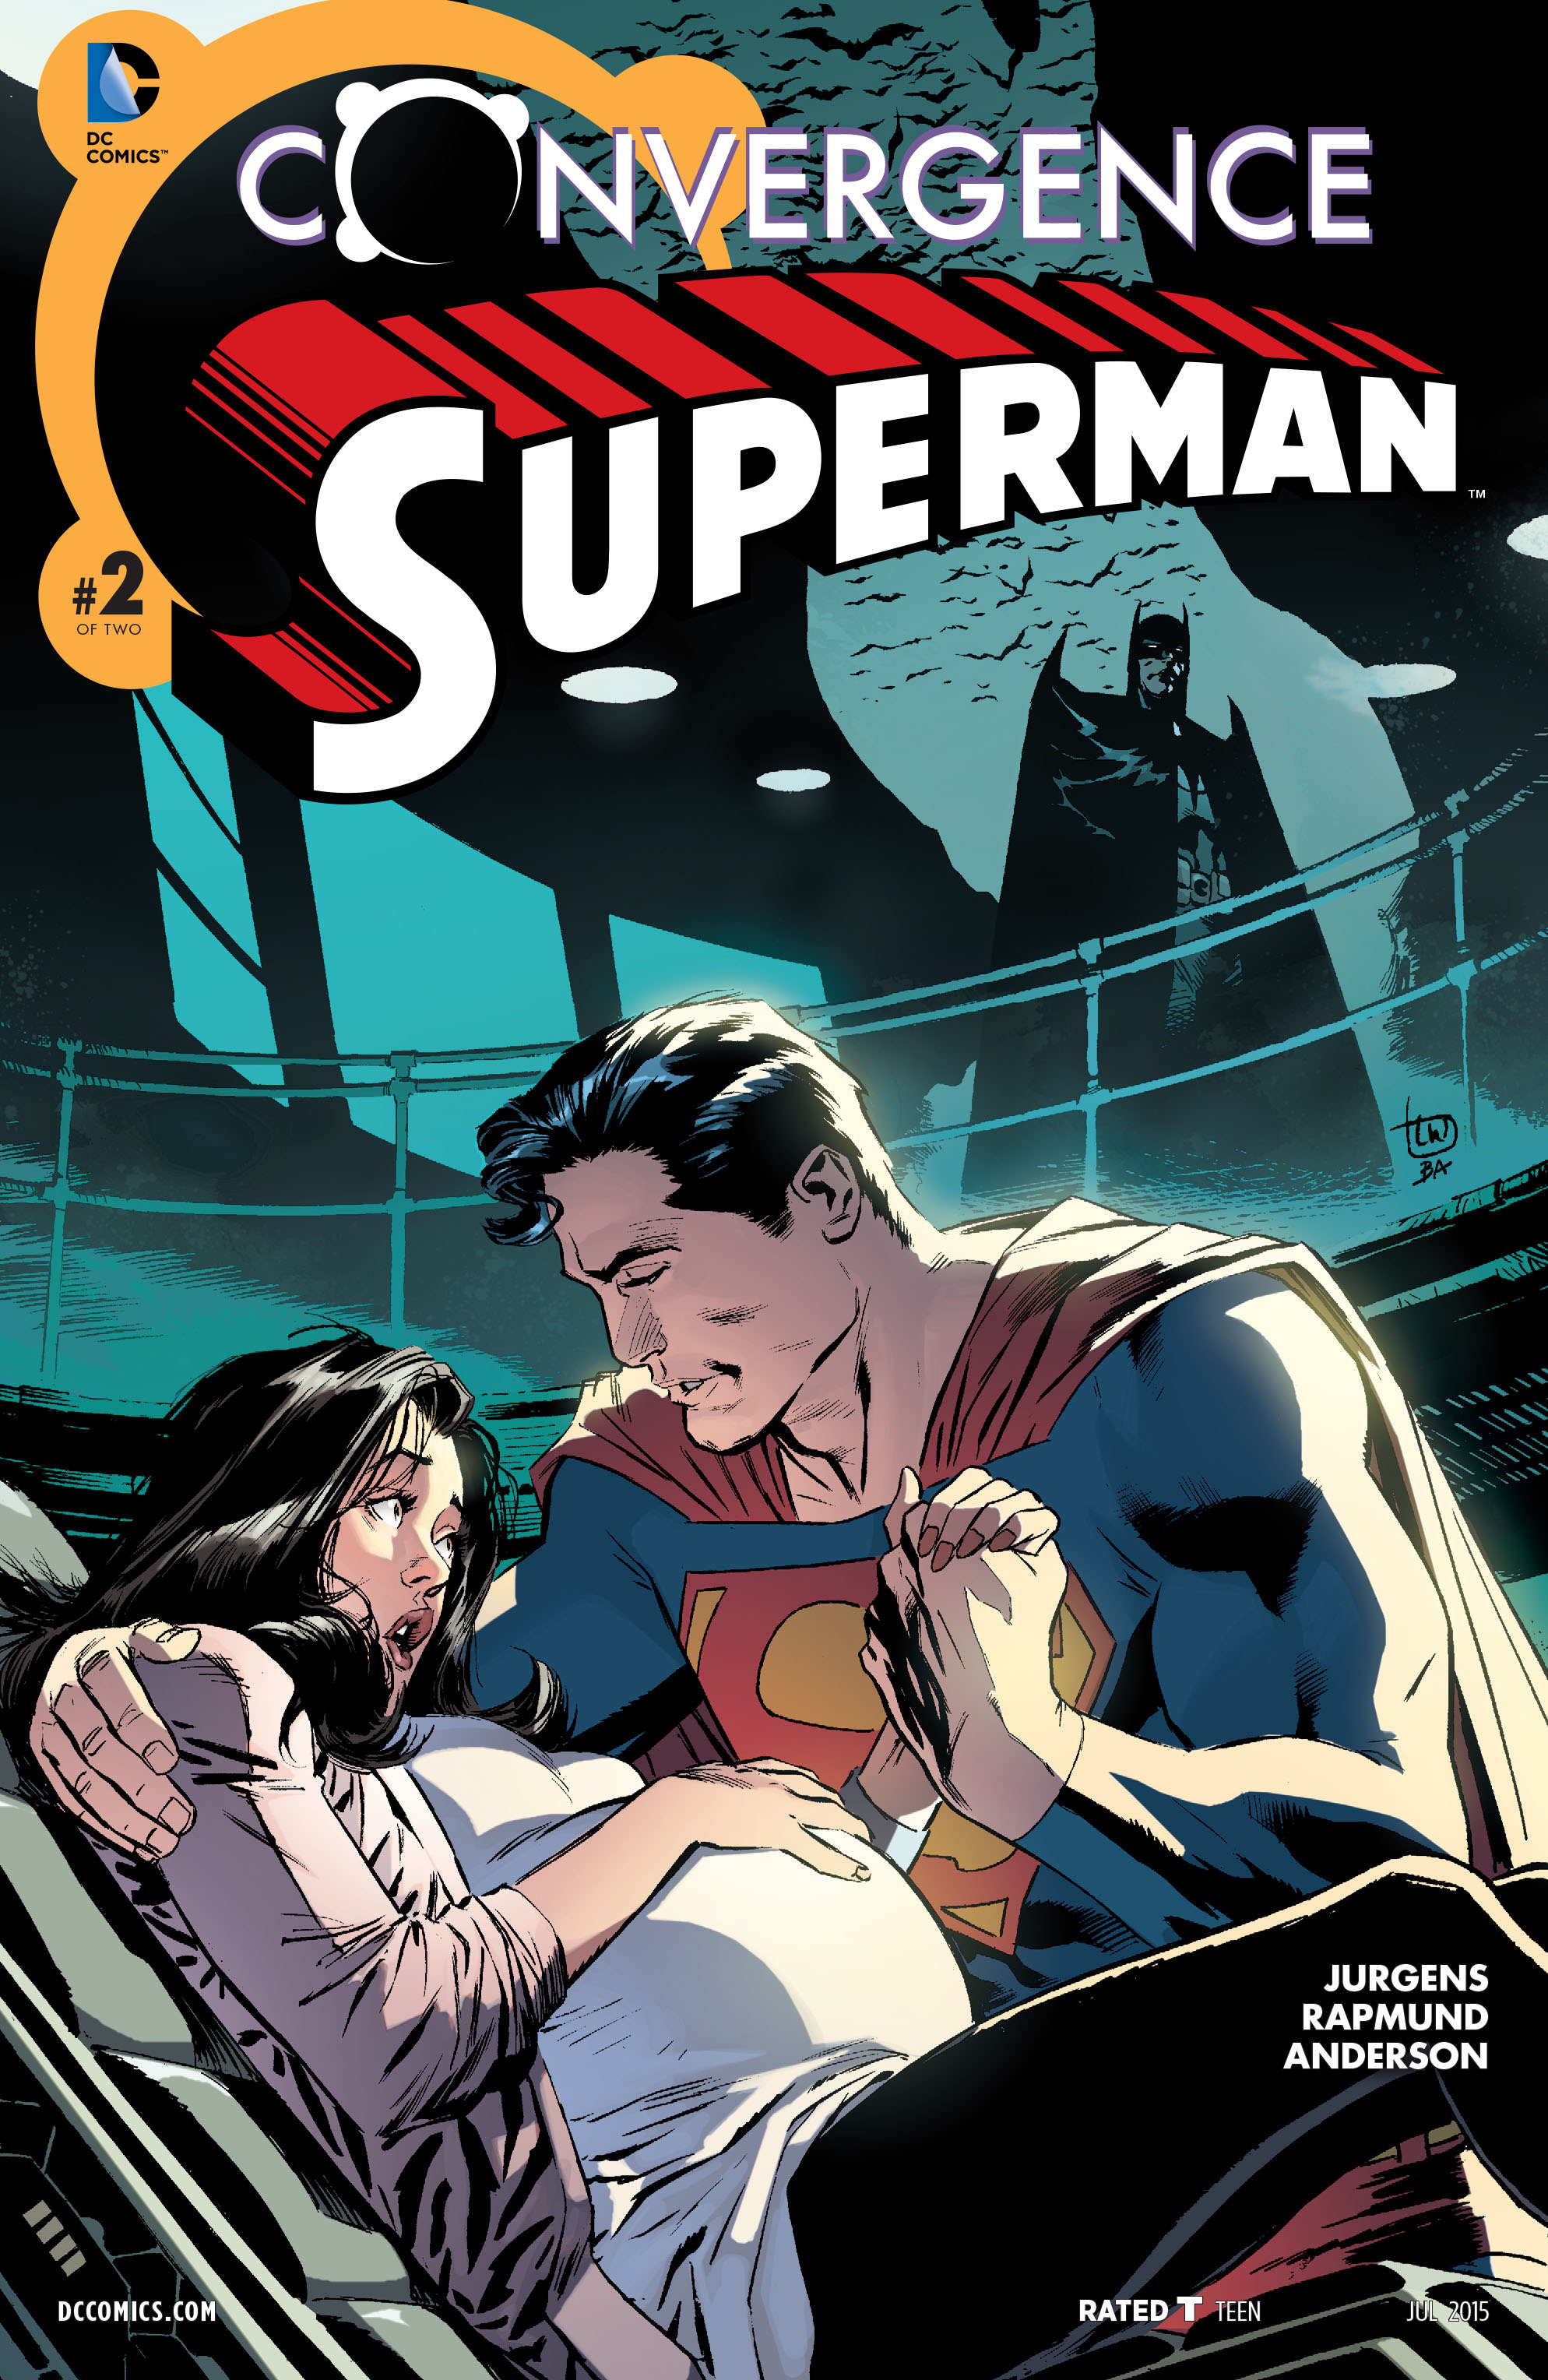 Read online Convergence Superman comic -  Issue #2 - 1